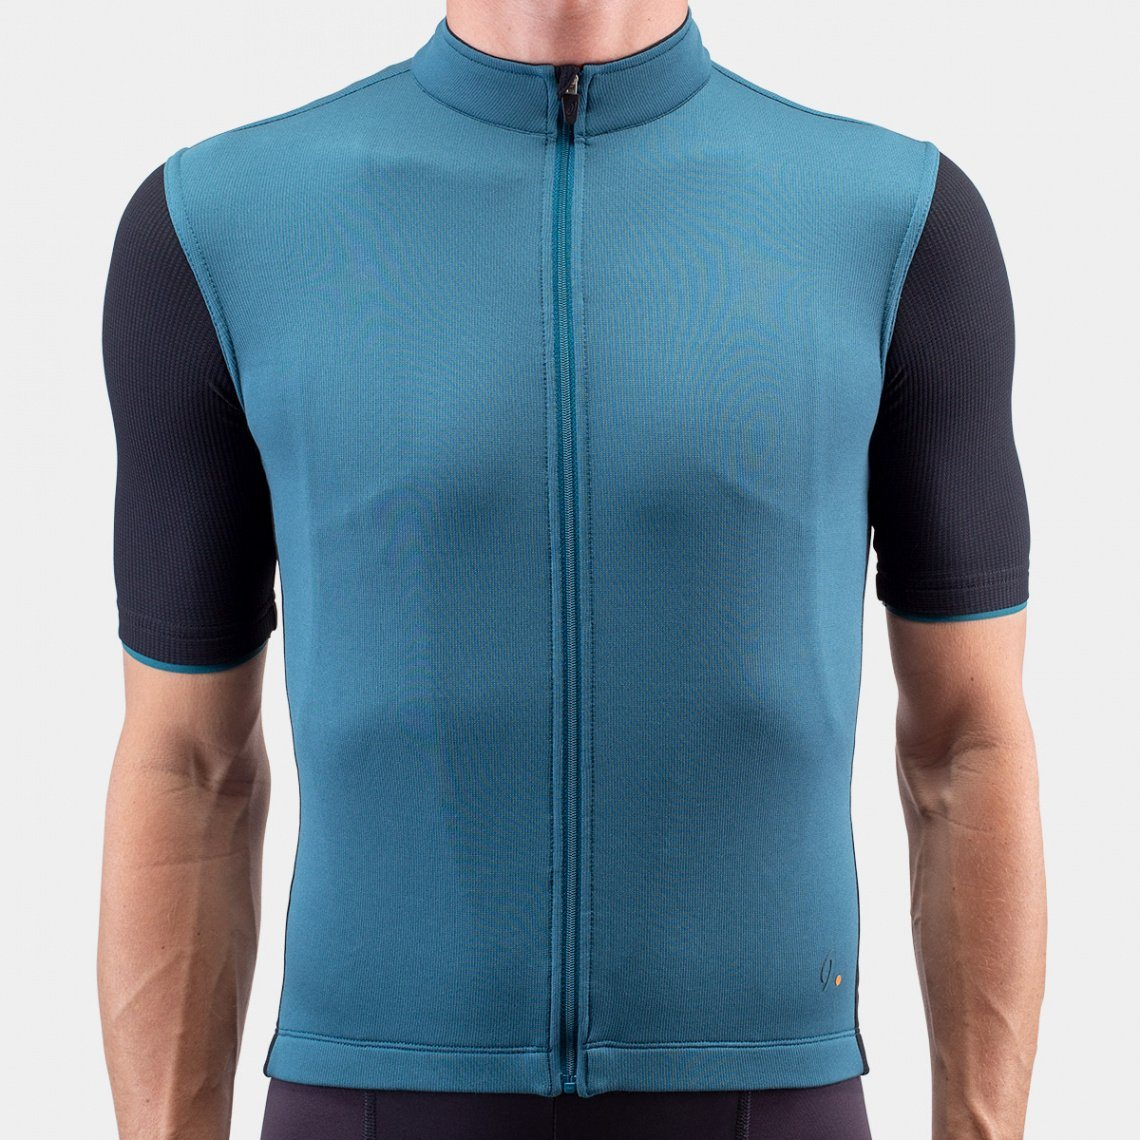 Signature Cycling Jersey - Atlantic Blue/Black Cycling Jersey Isadore XS